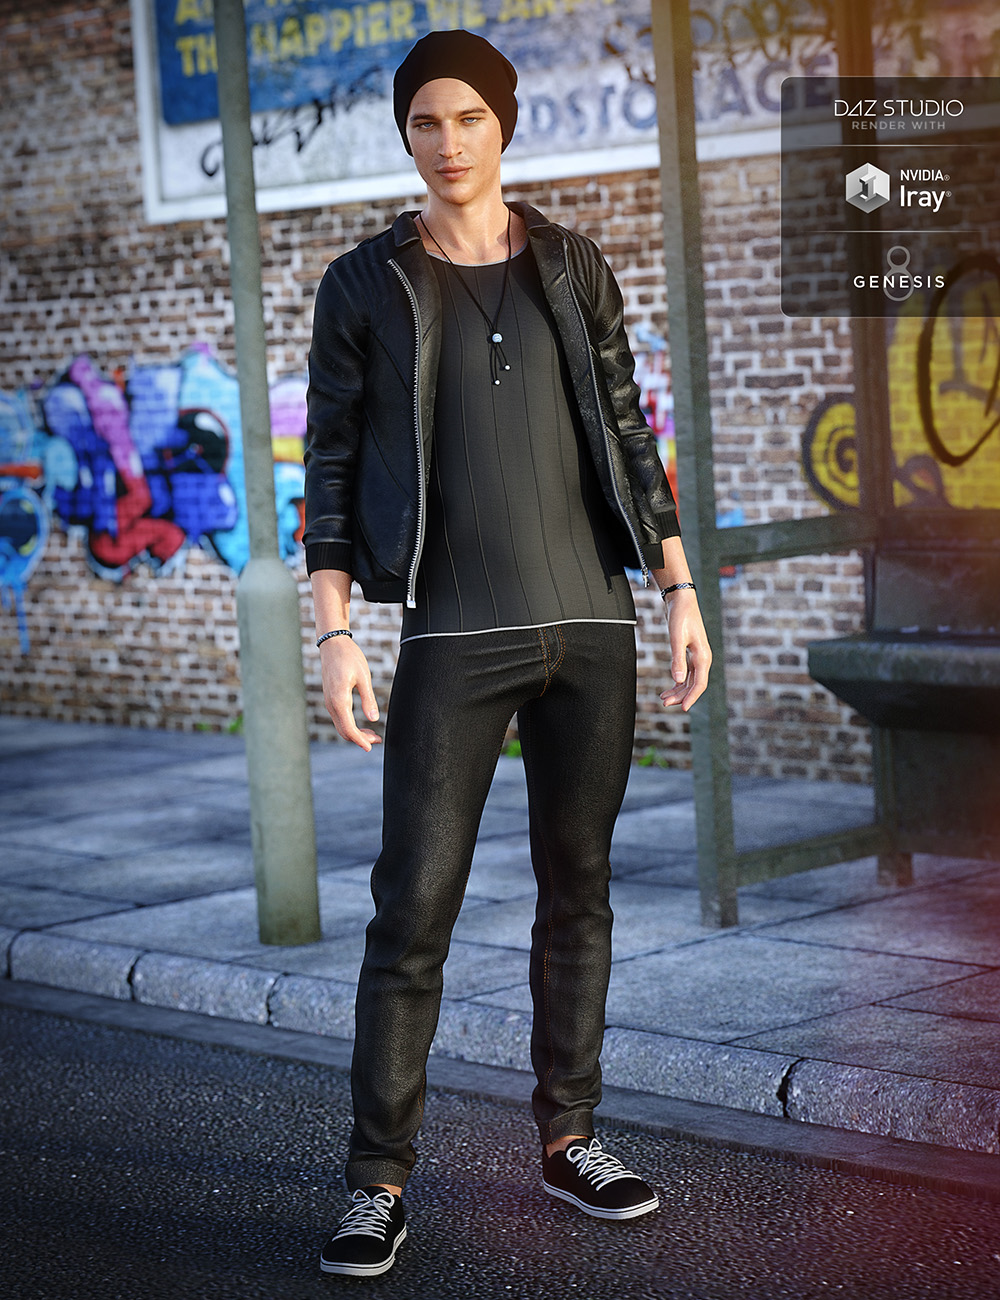 Alt Style Outfit for Genesis 8 Male(s) by: Mely3DNikisatez, 3D Models by Daz 3D